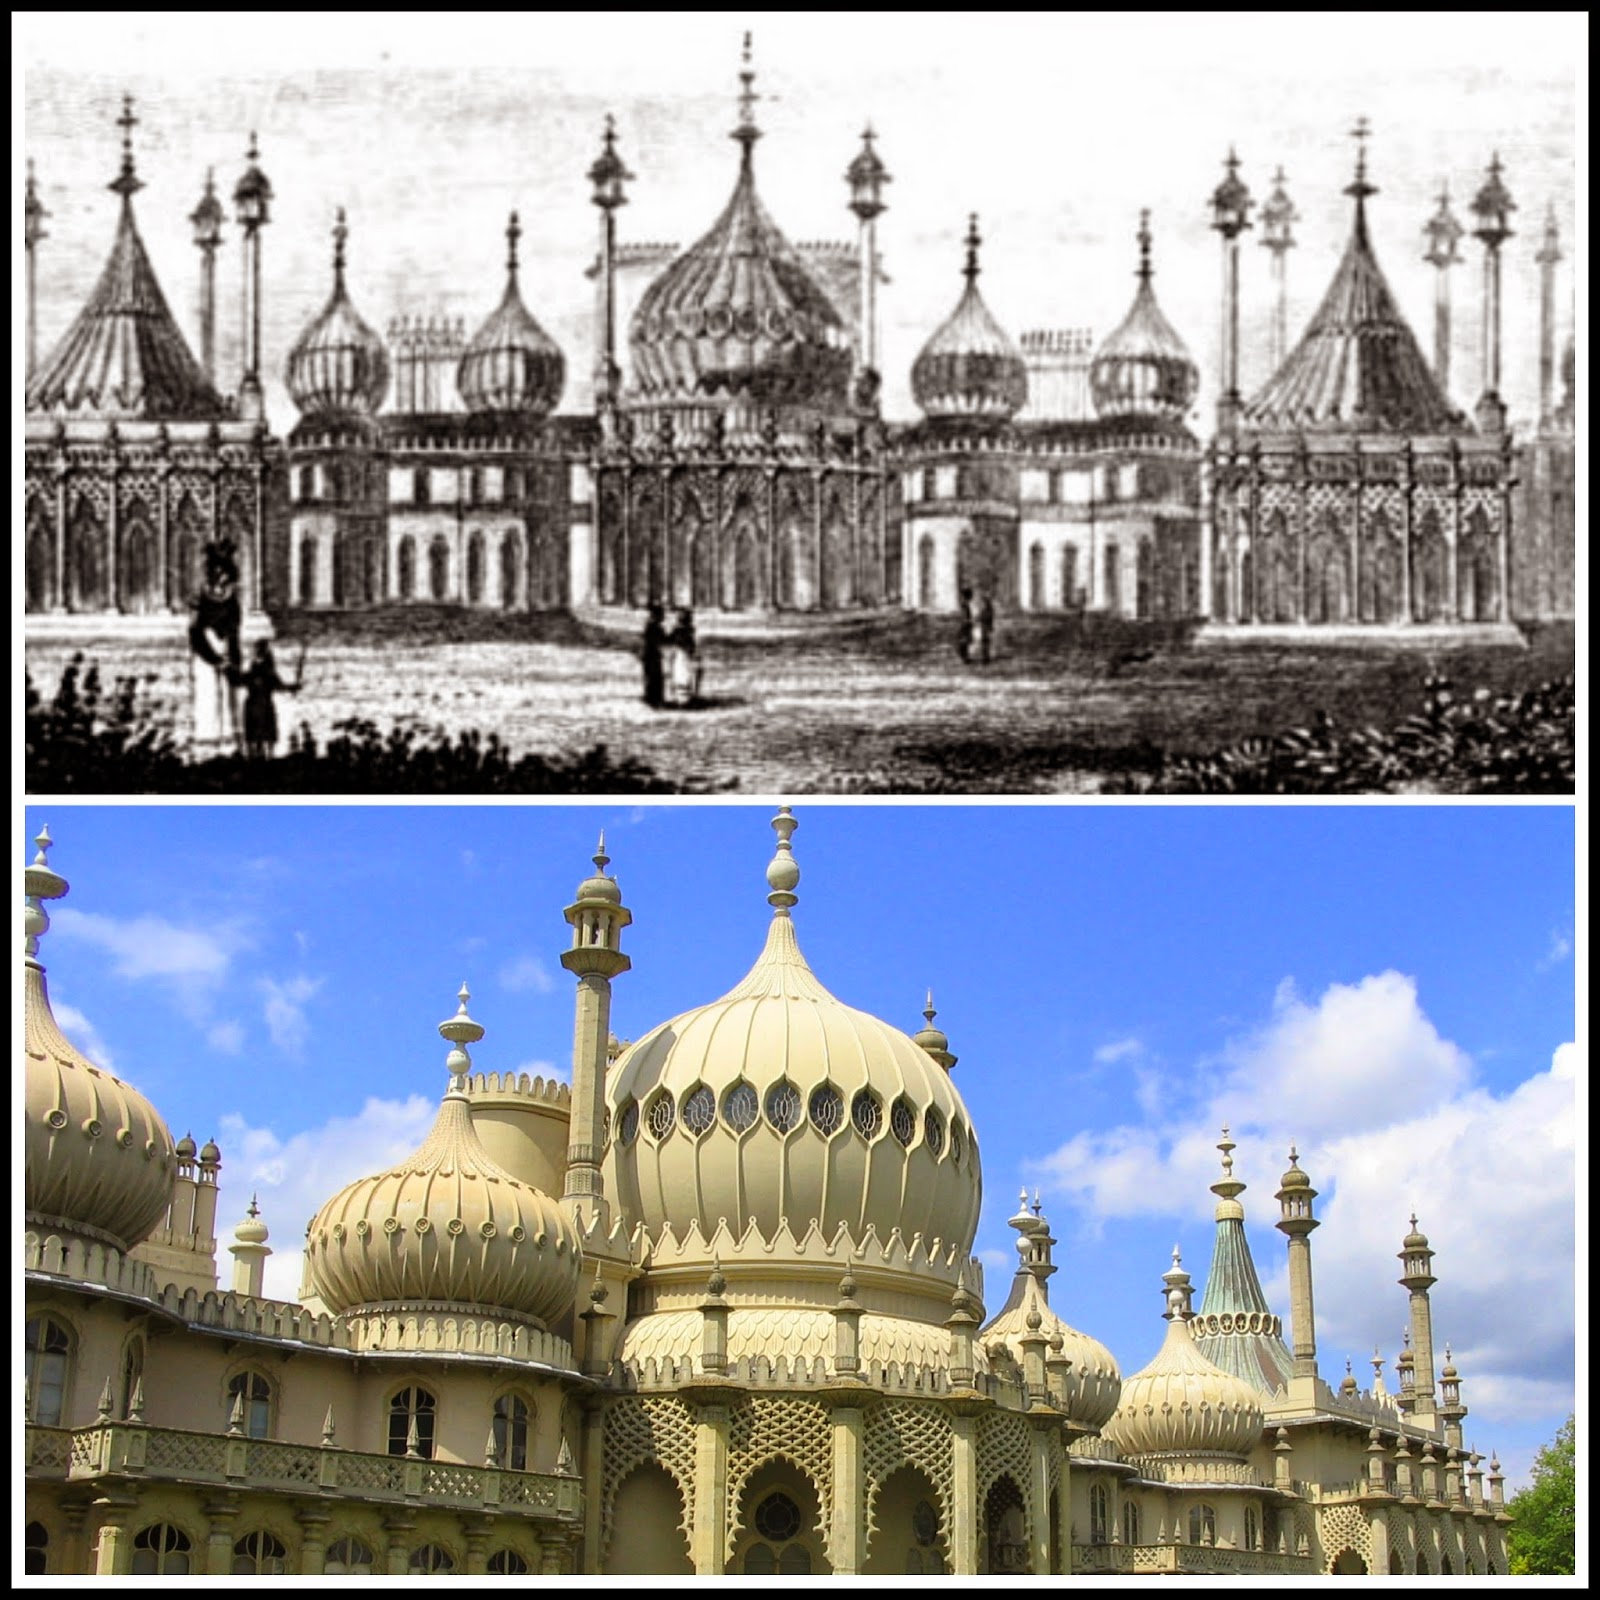 Brighton Pavilion  Top: From History of Brighton and its environs by R Sickelmore (1827)  Bottom: Brighton Pavilion today © Andrew Knowles